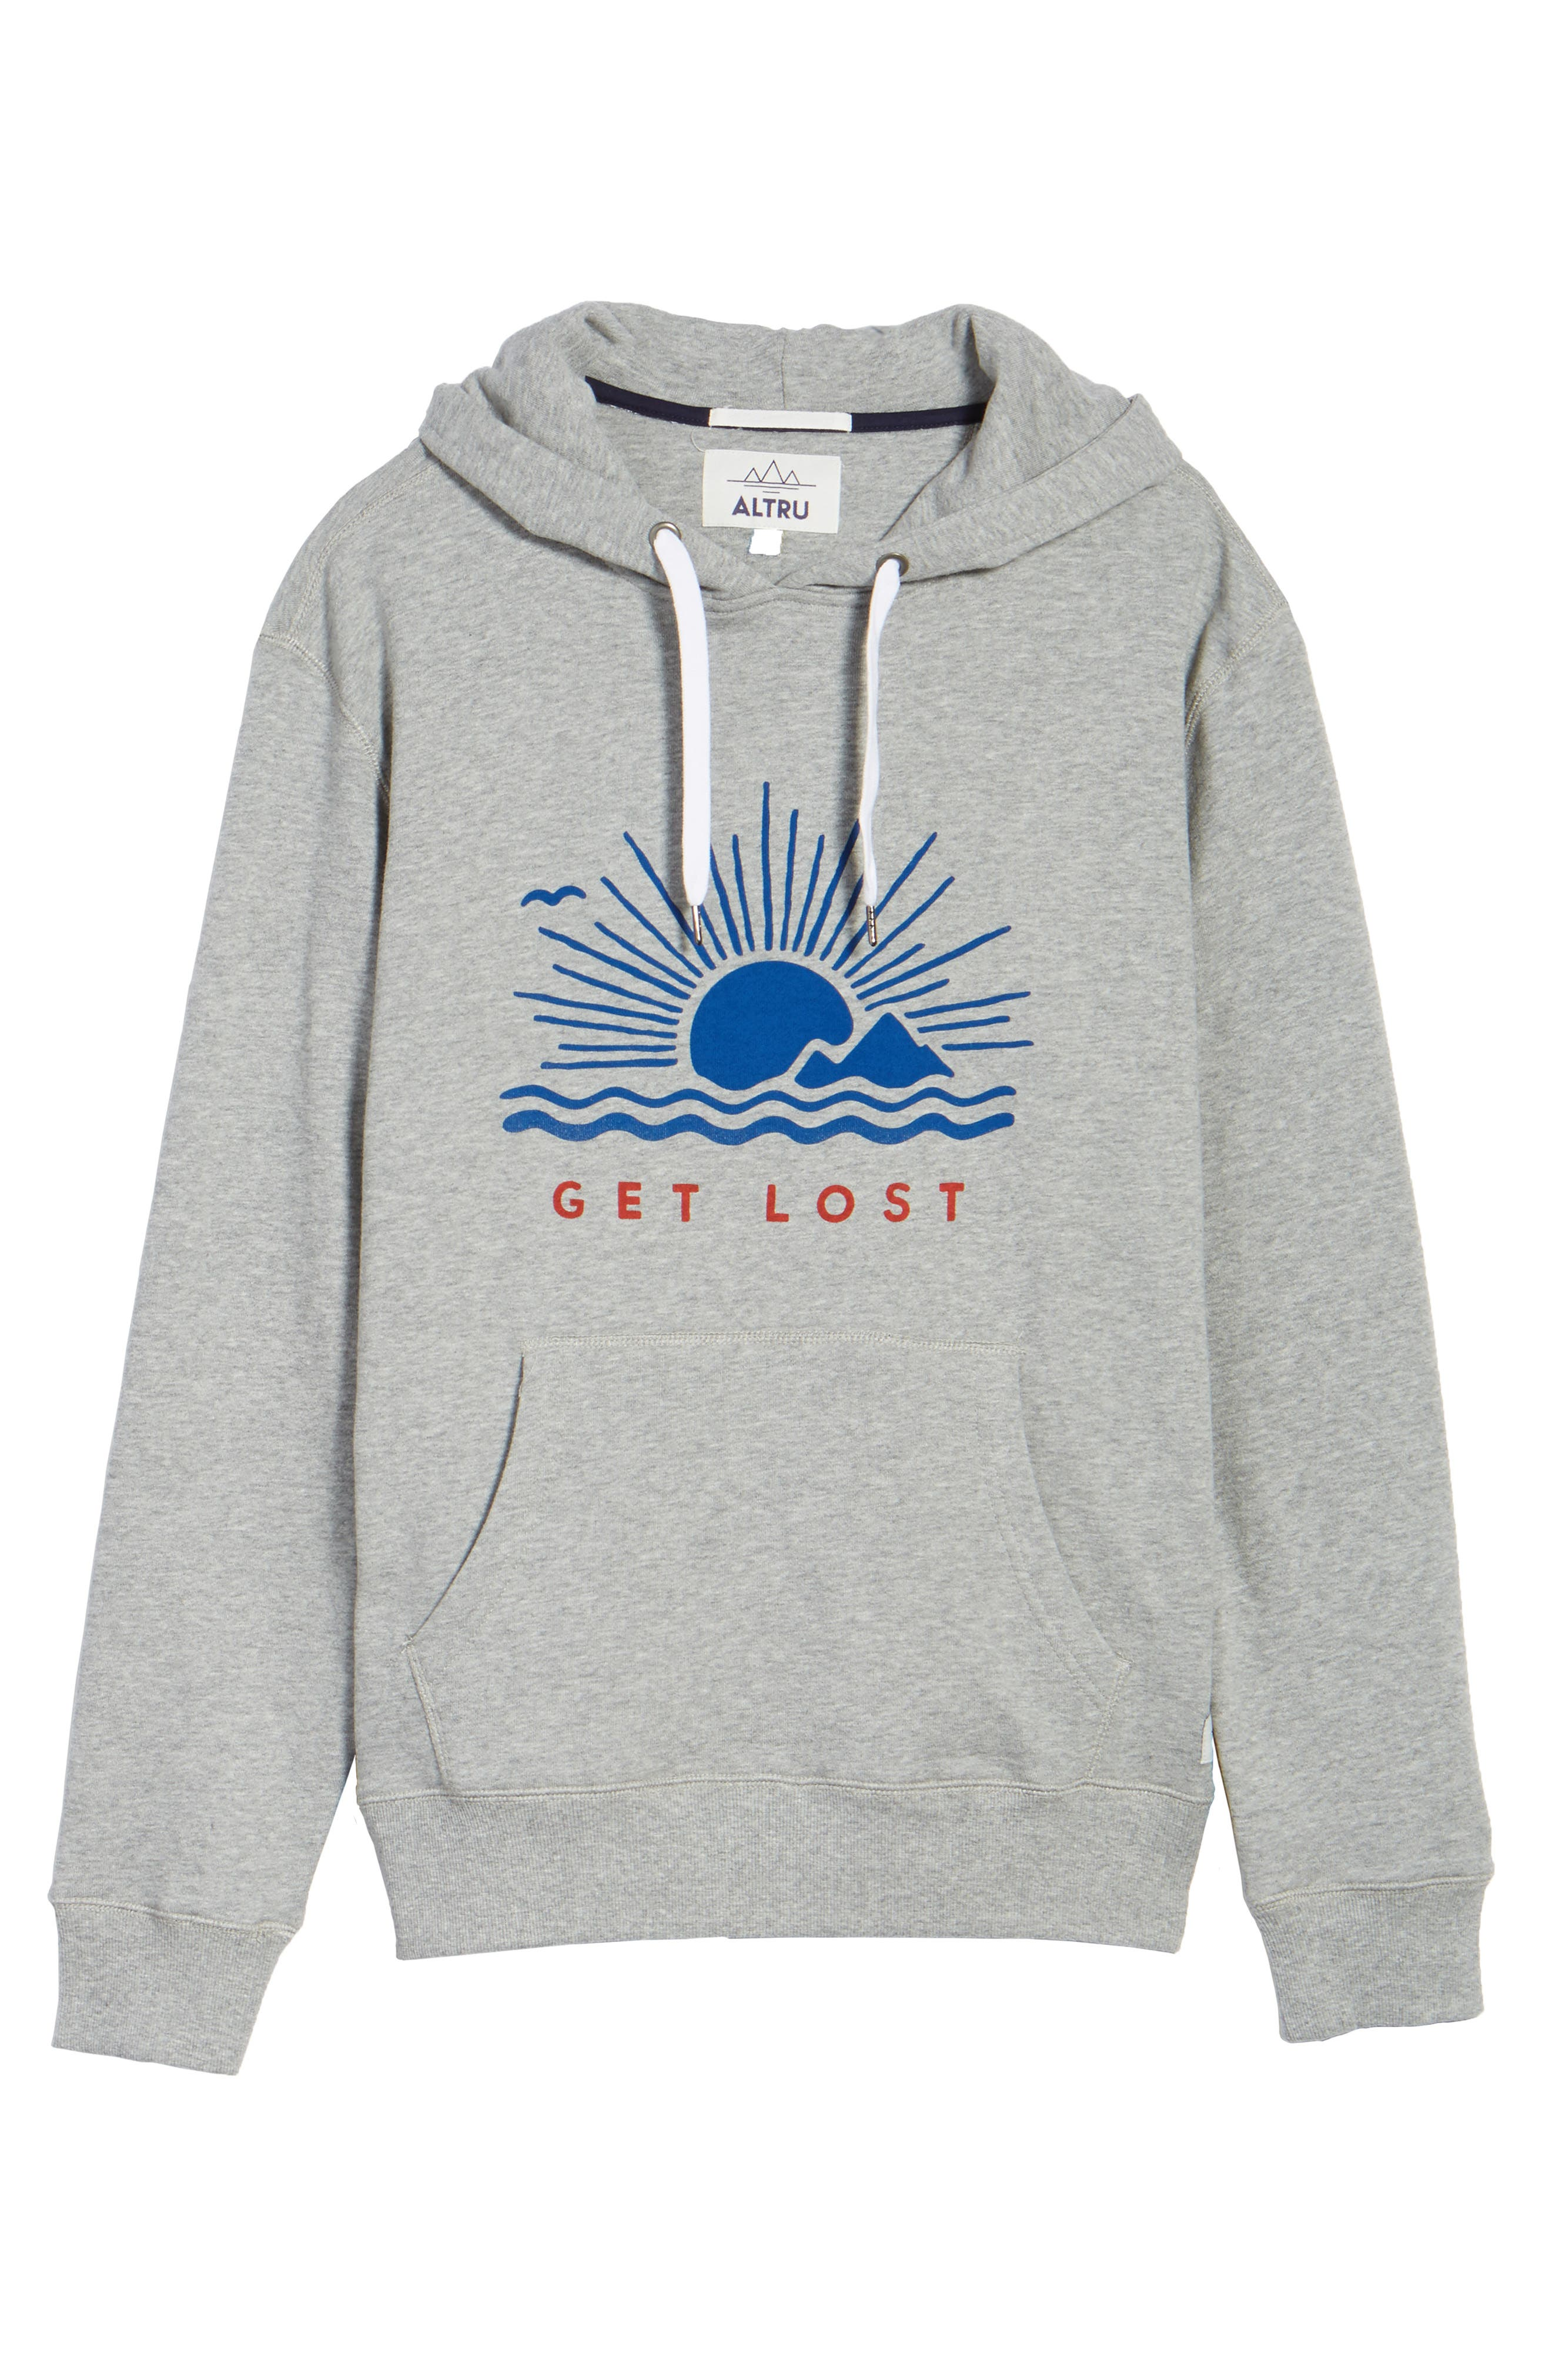 Get Lost French Terry Hoodie,                             Alternate thumbnail 6, color,                             020